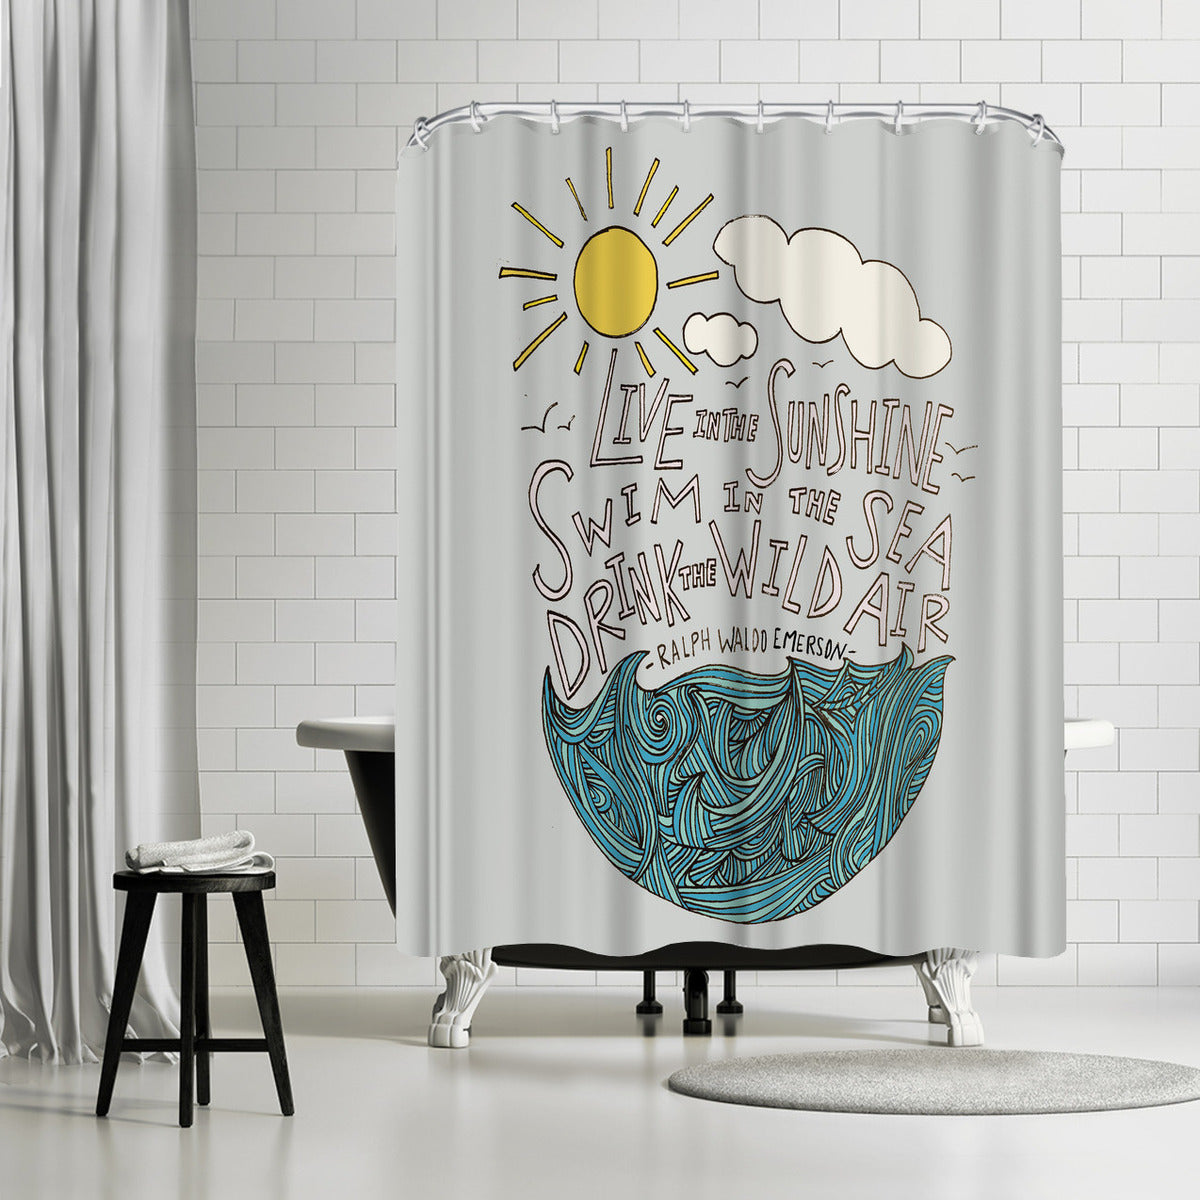 Live In The Sunshine by Leah Flores Shower Curtain - Shower Curtain - Americanflat